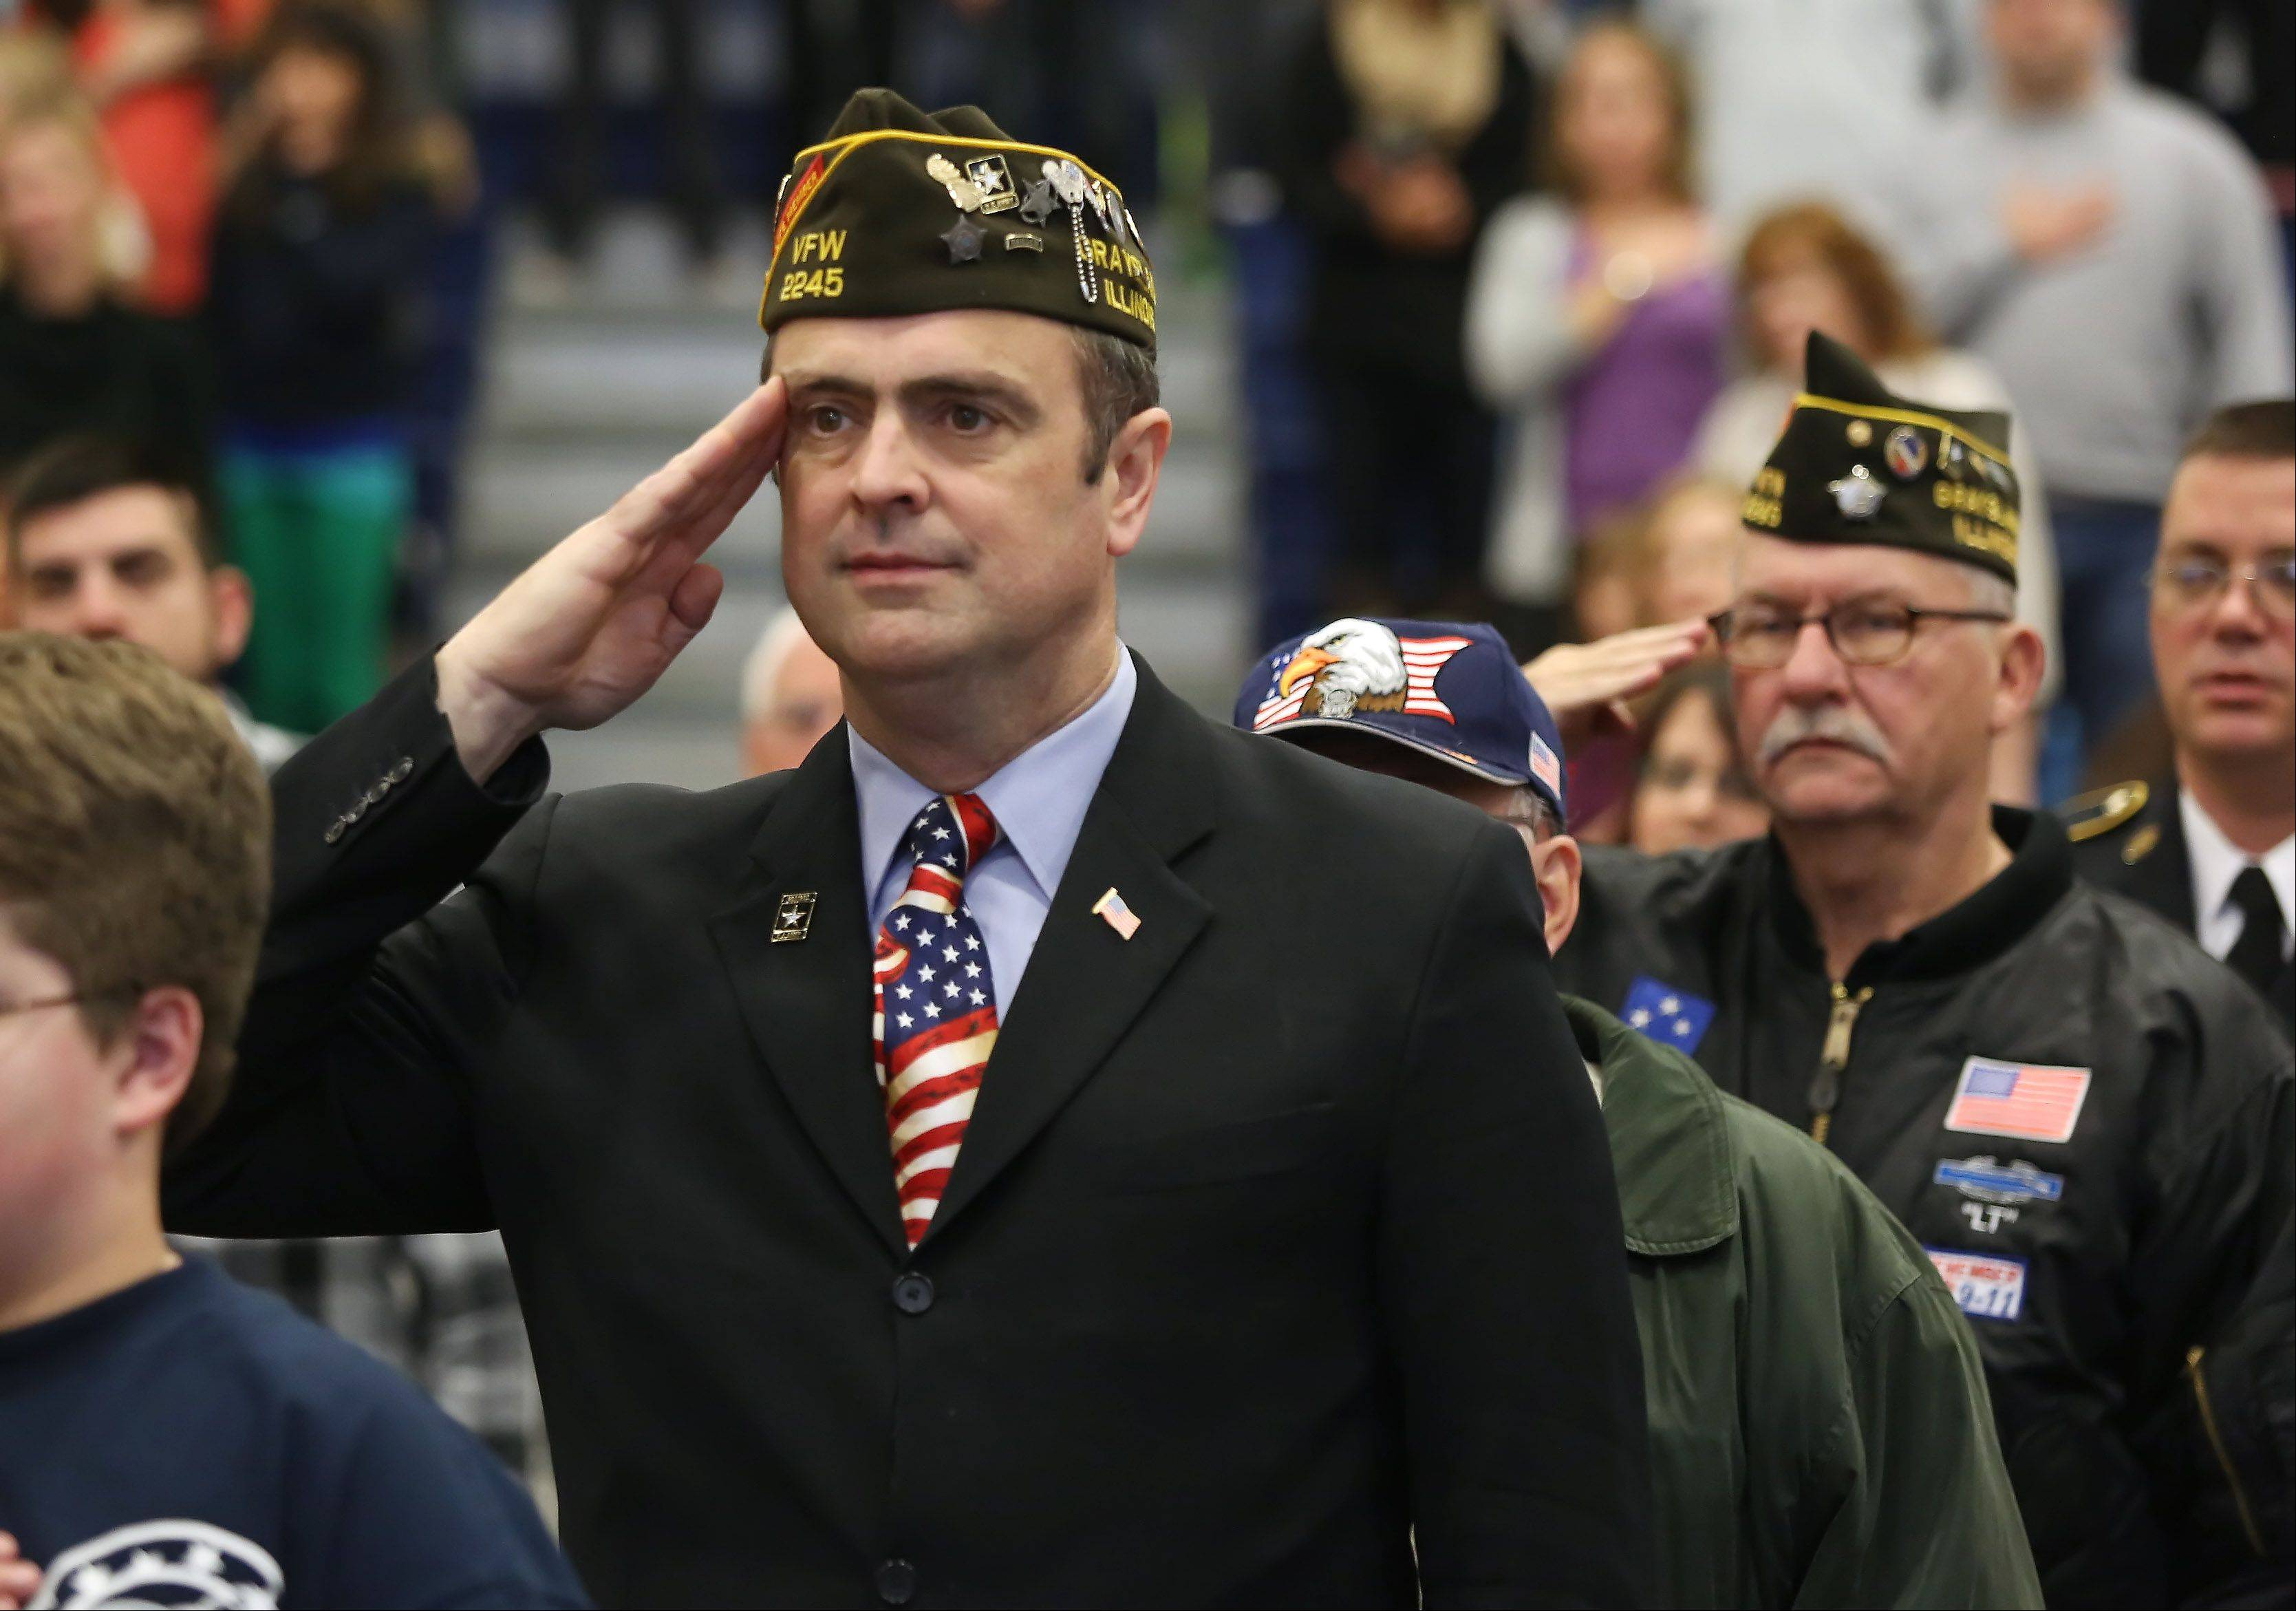 Former Army Col. Paul Ahern of VFW Post 2245, left, joins other veterans as he salutes during the playing of the National Anthem at the Veterans Day assembly Monday at Frederick School in Grayslake.